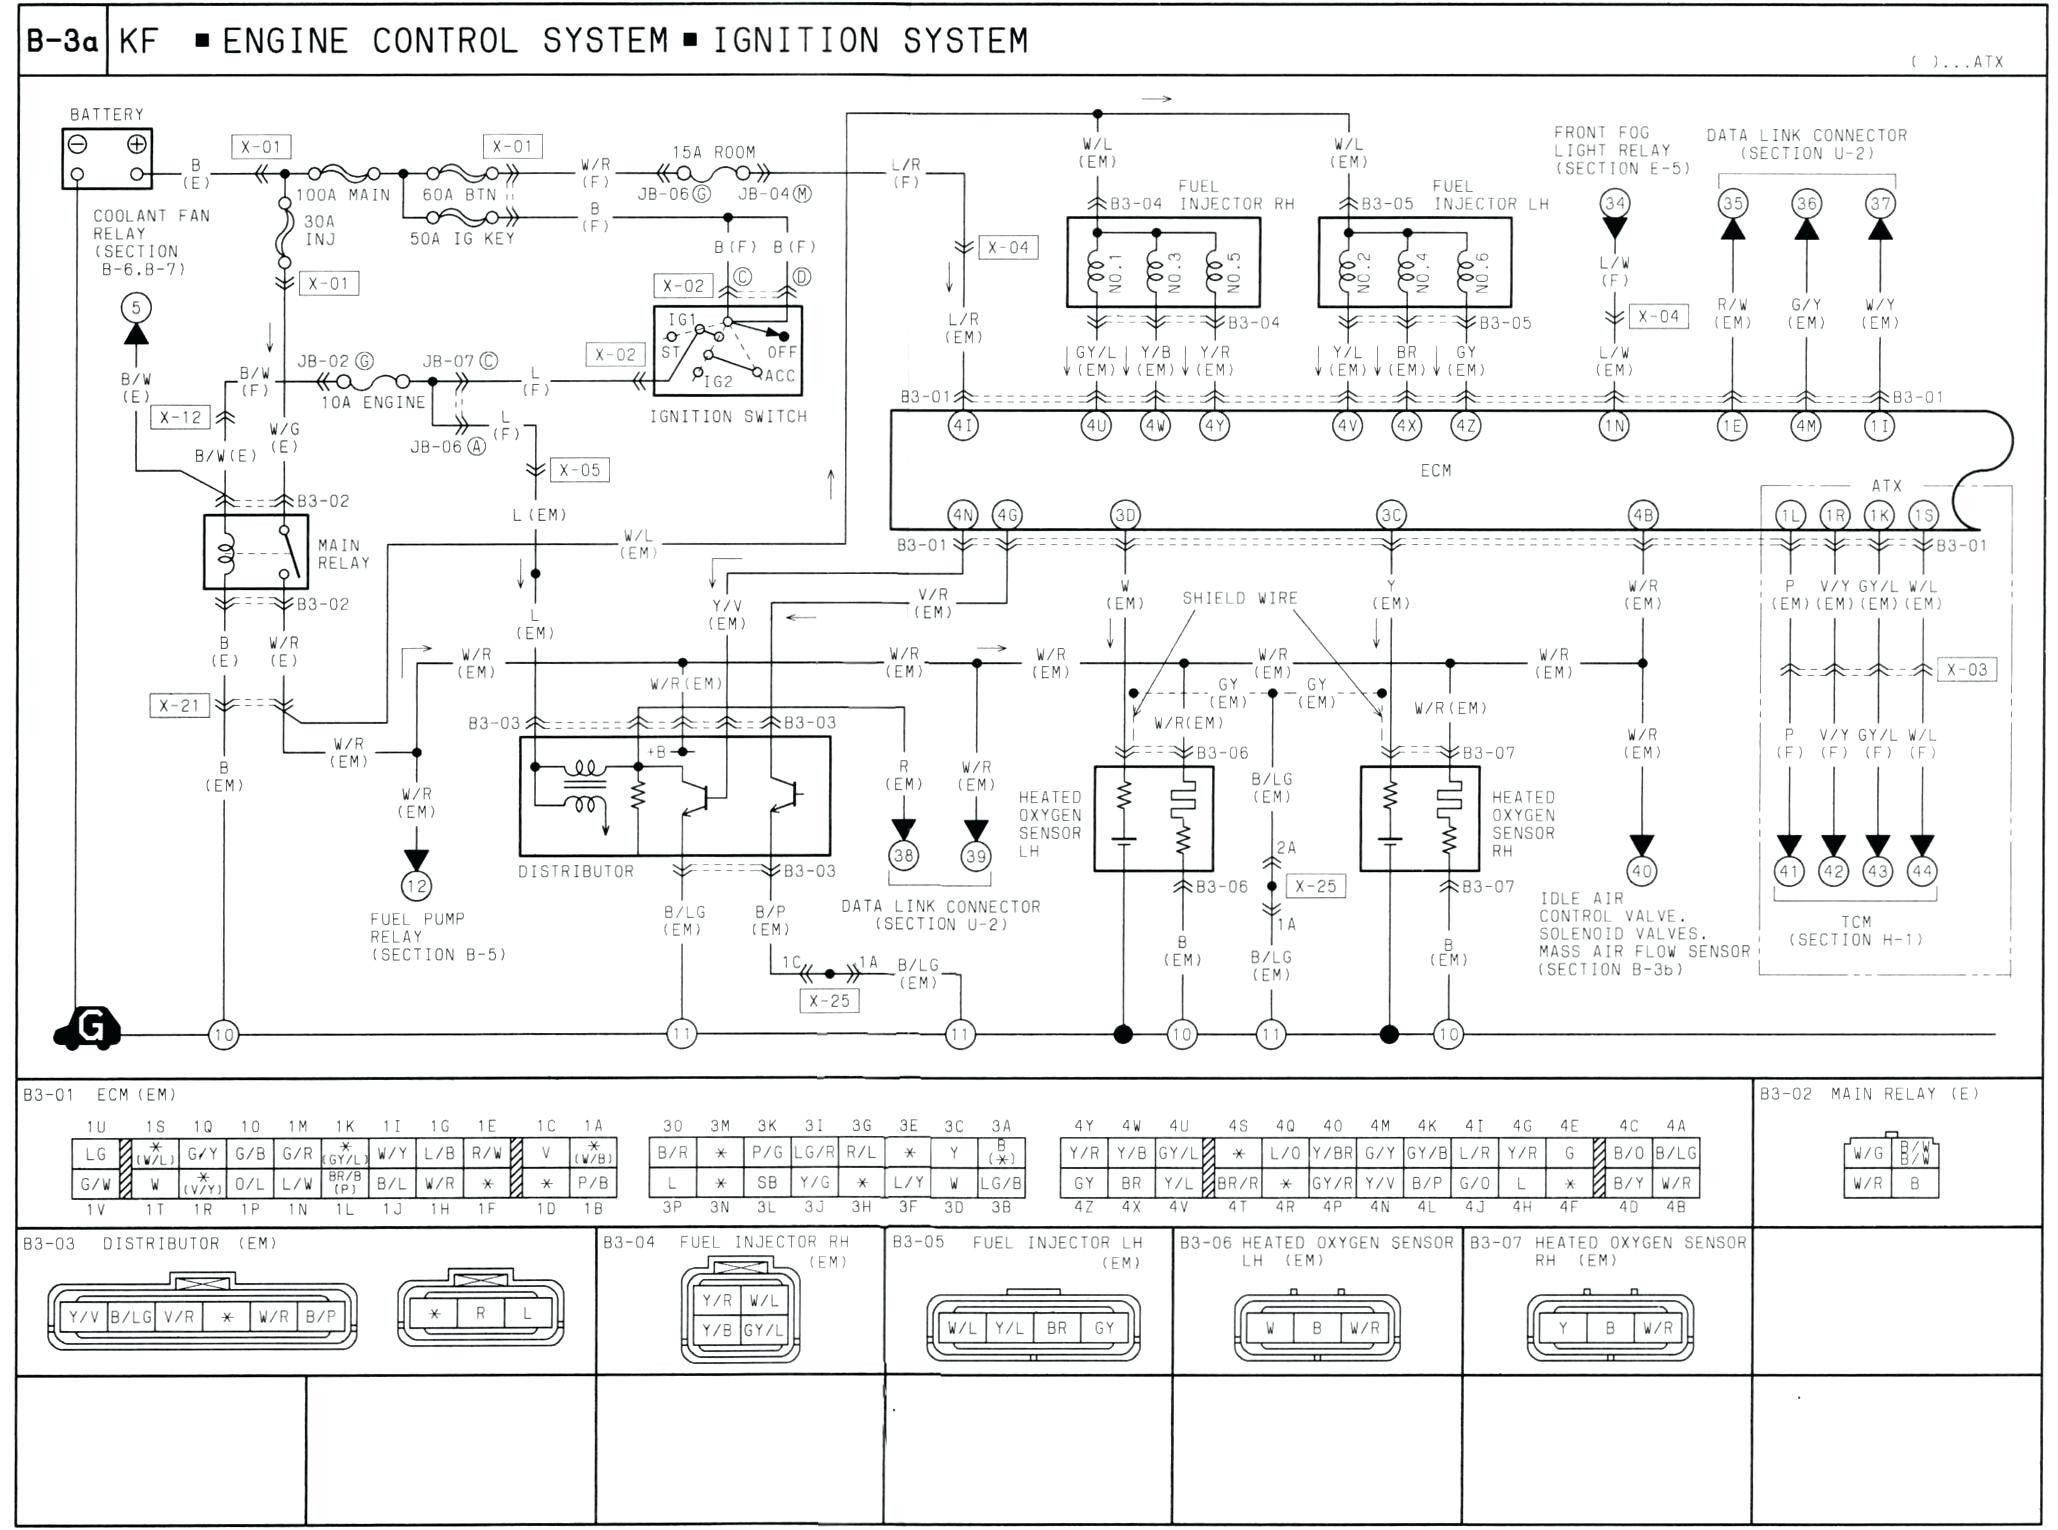 1999 mazda 626 engine diagram eibu rennsteigmesse de \u202299 mazda 626  engine diagram best wiring